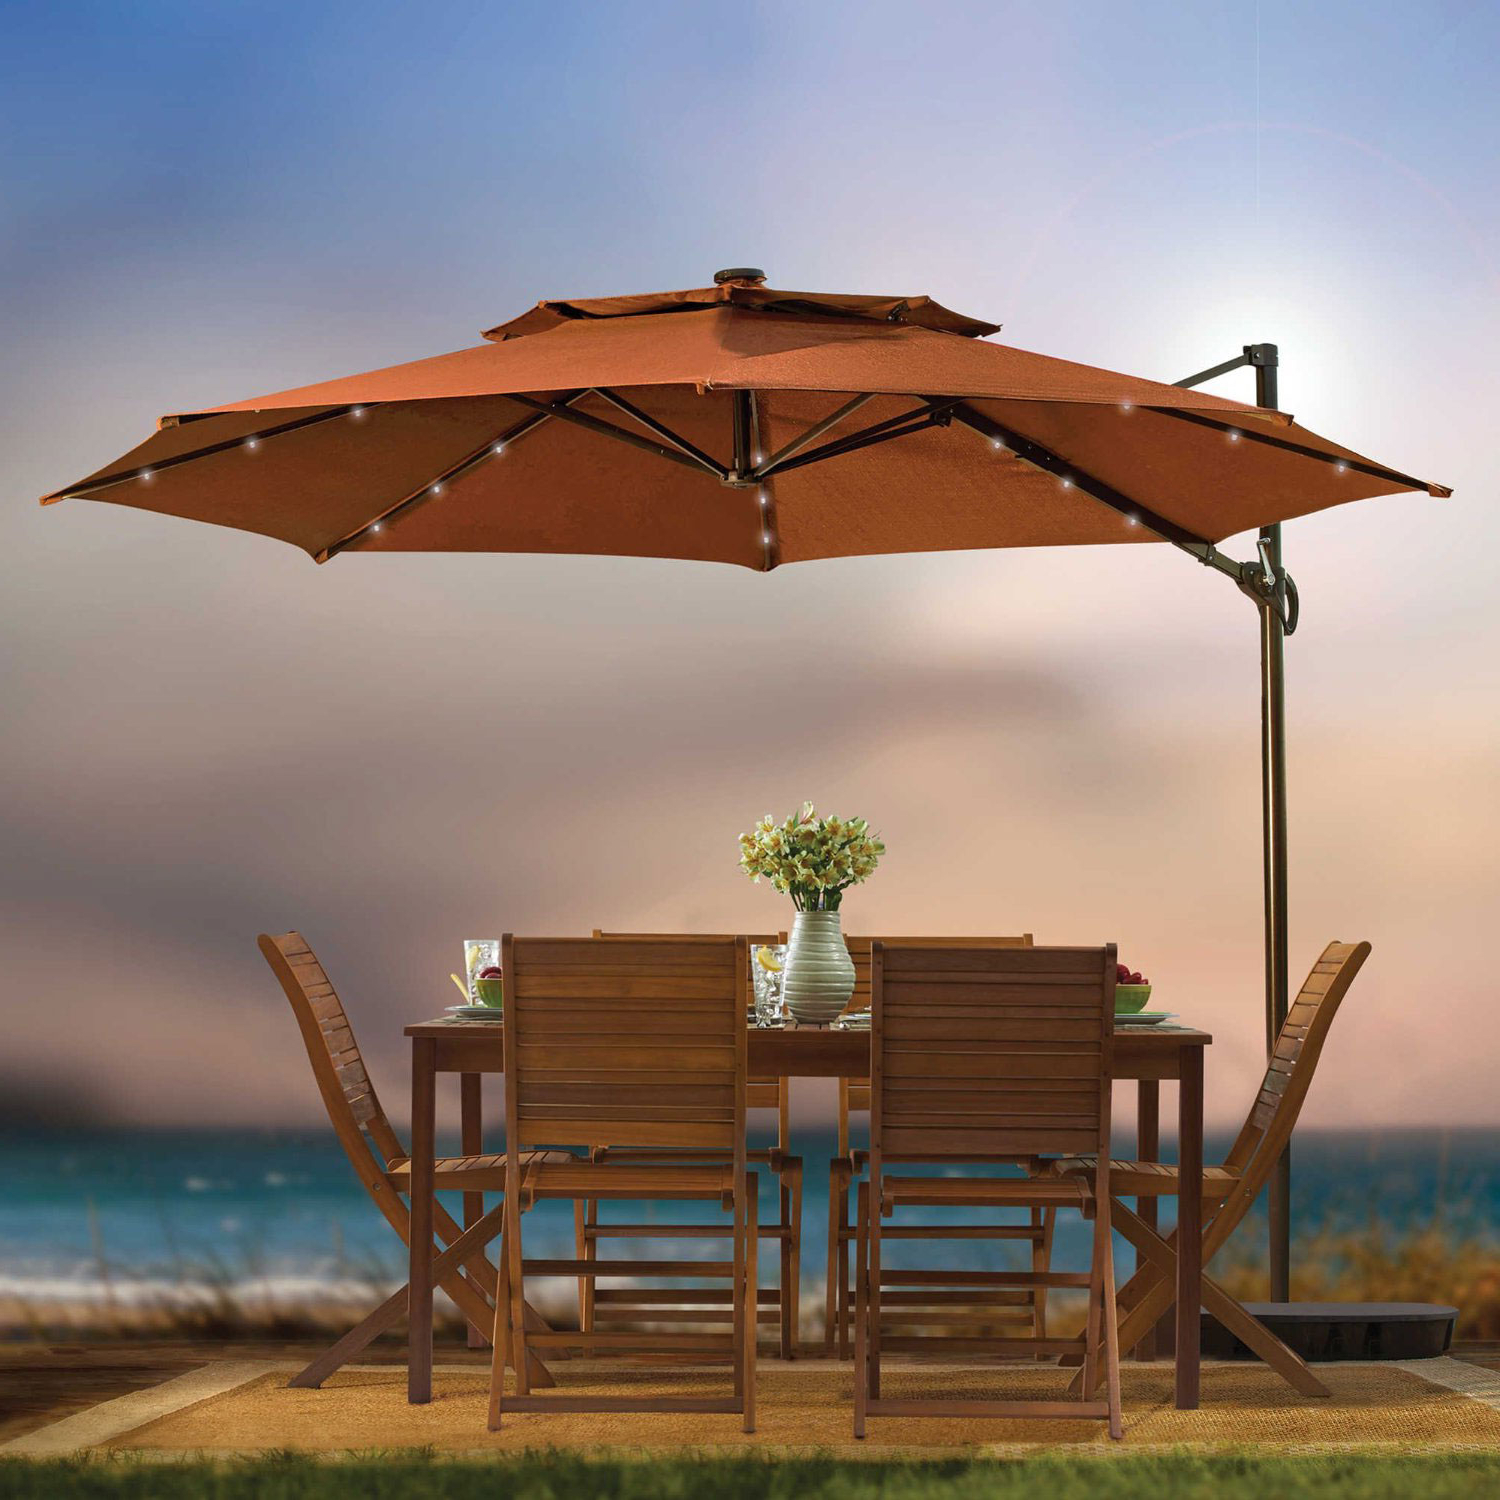 Hurt Market Umbrellas Pertaining To Most Current Best Patio Umbrella – Reviews & Buying Guide (August 2019) (View 7 of 20)